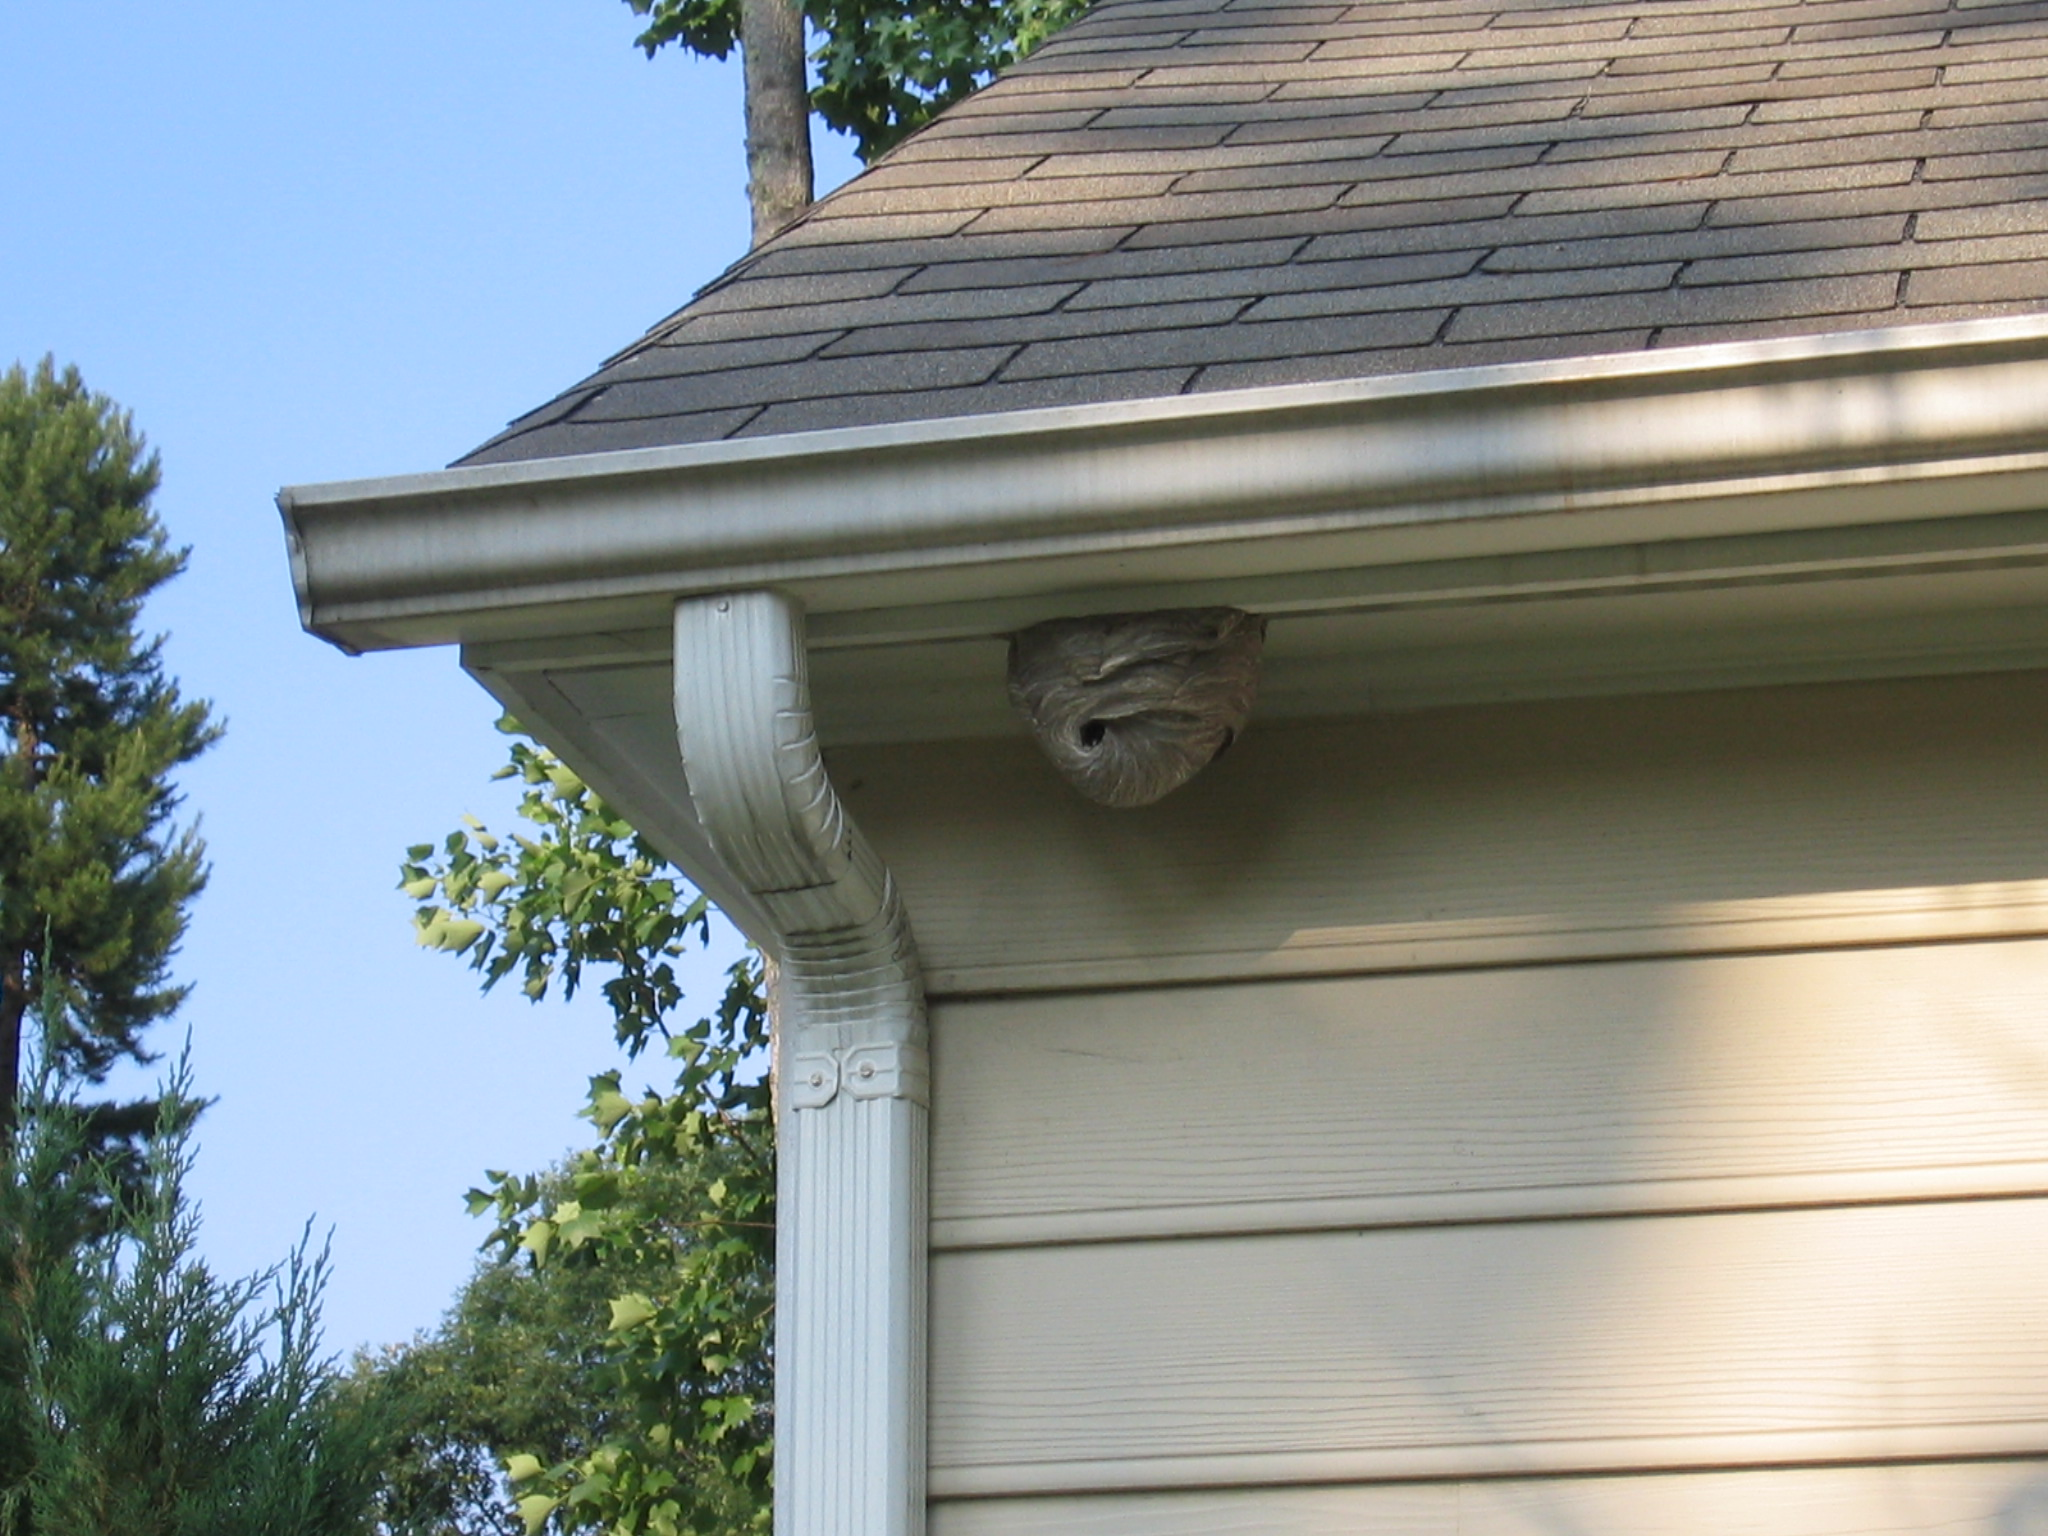 Hornet nest removal by your house